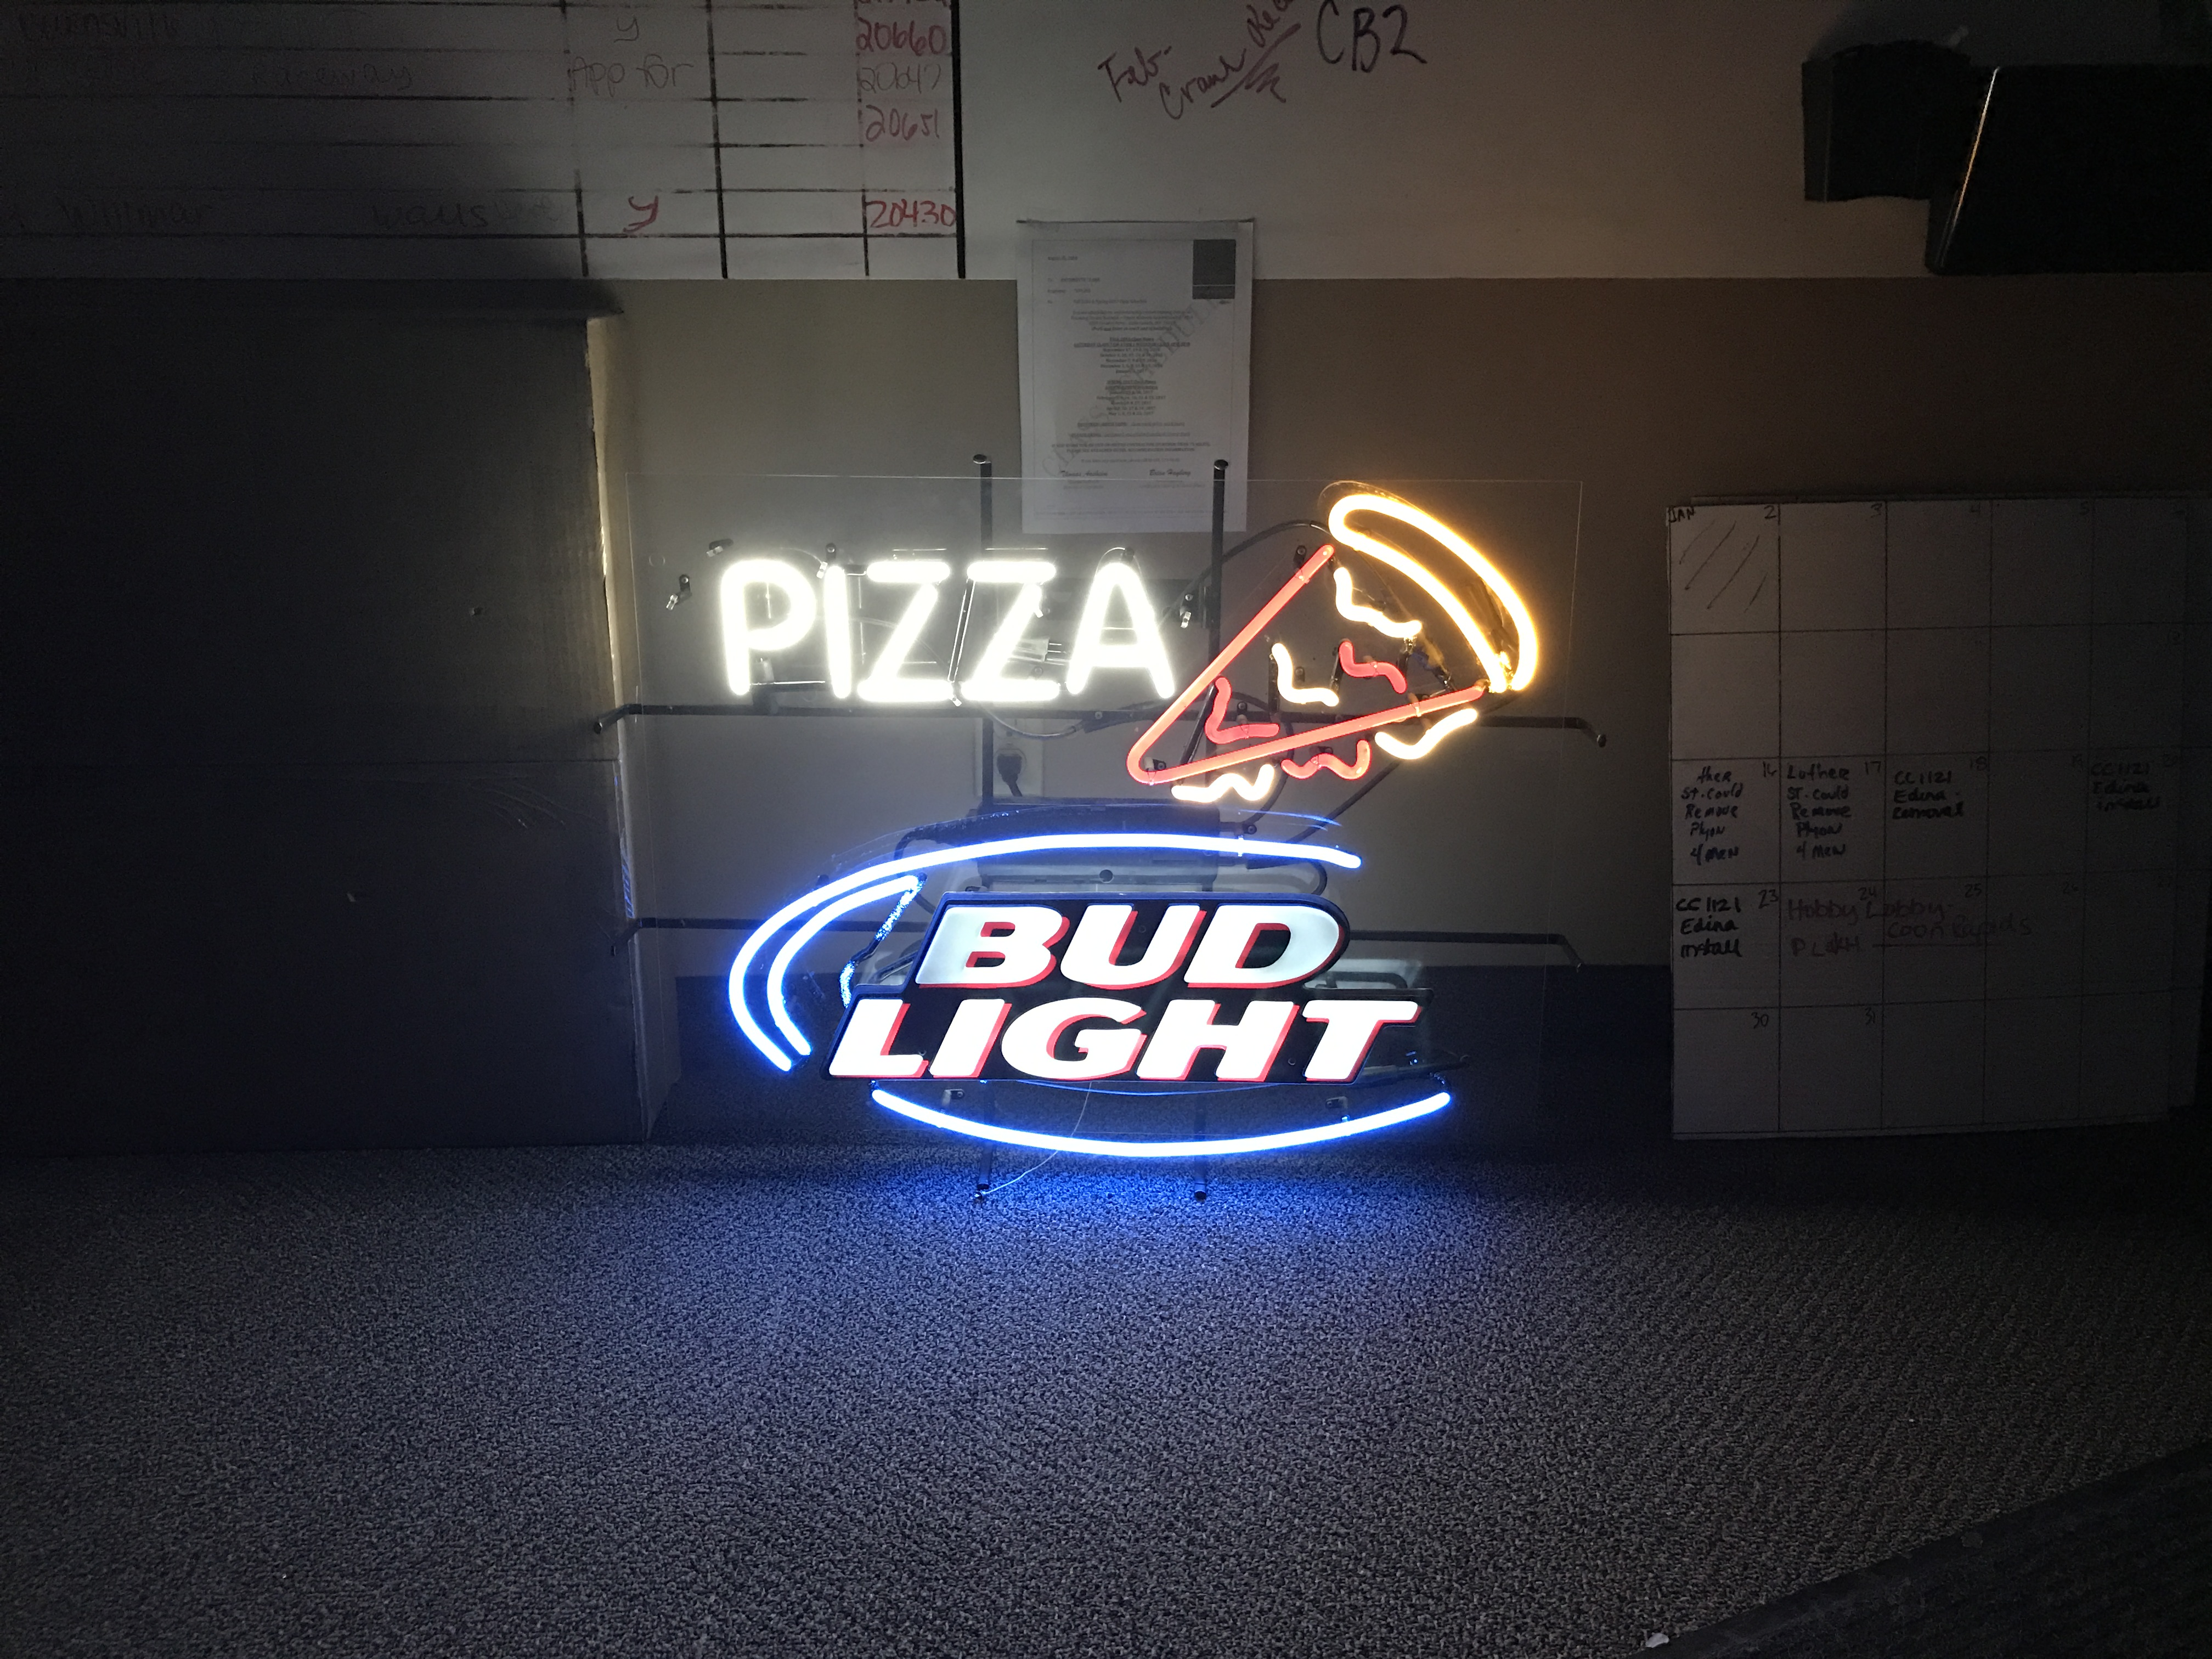 Pizza & Bud Light Neon Sign